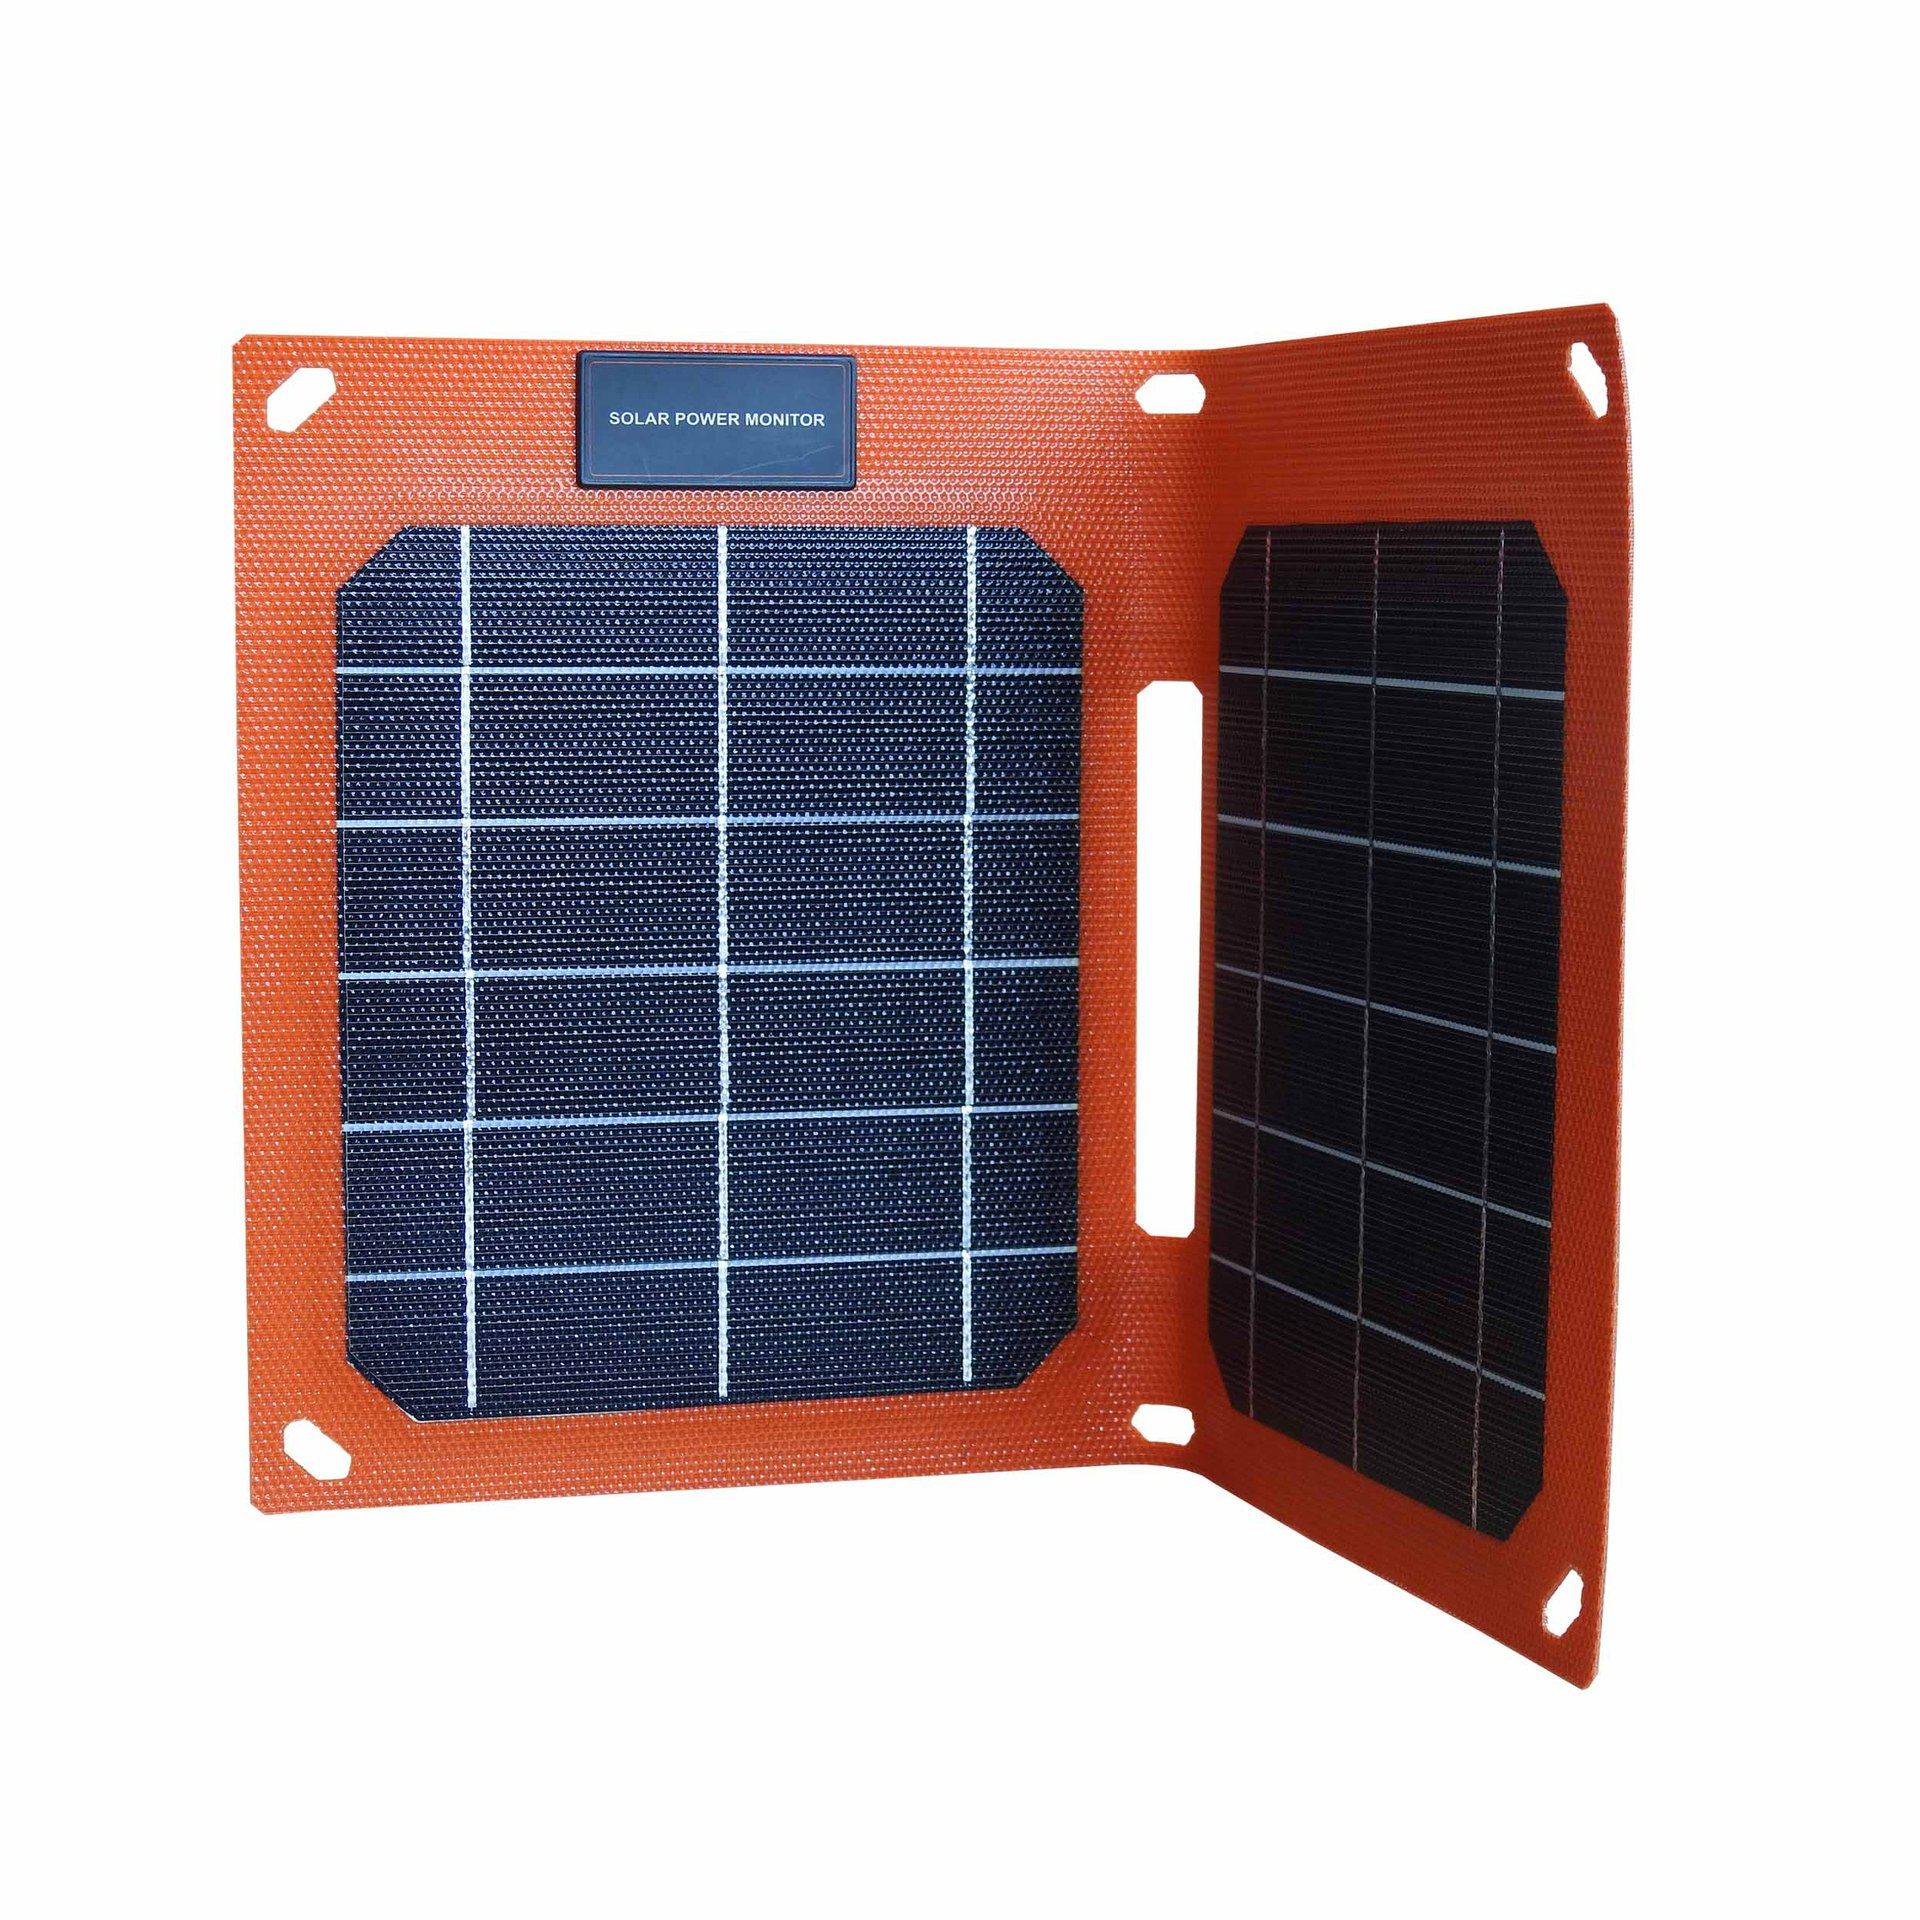 10W Solar Panels Portable Folding Foldable Waterproof Solar Panel Charger Power Bank for Phone Battery Charger